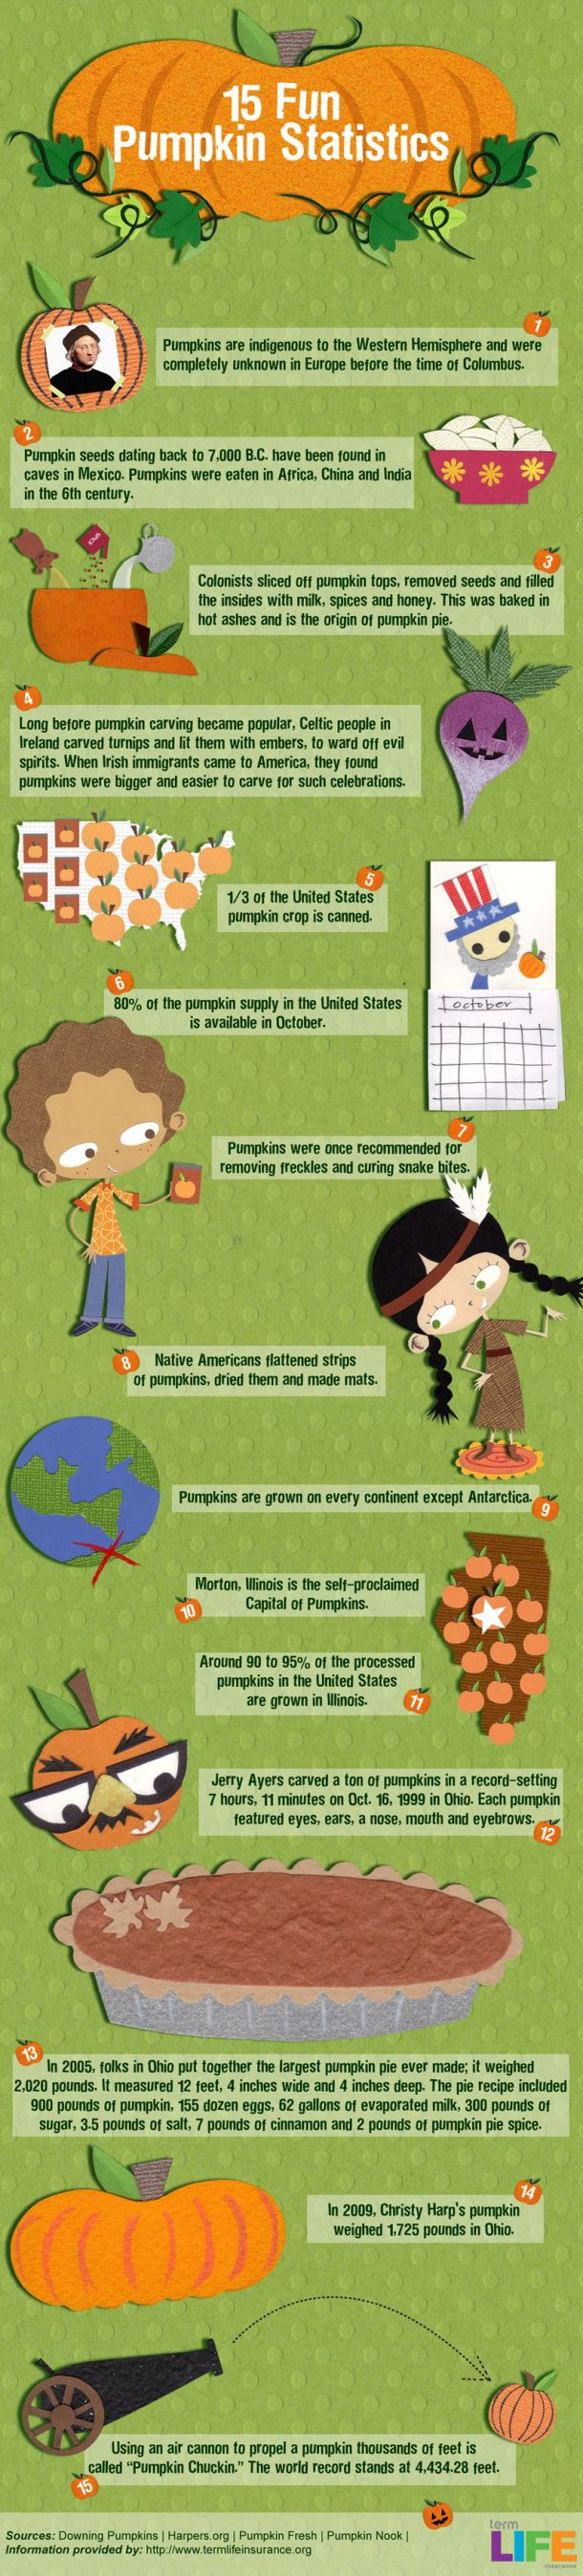 15 Pumpkin Facts                                                                                                                                                                                 More